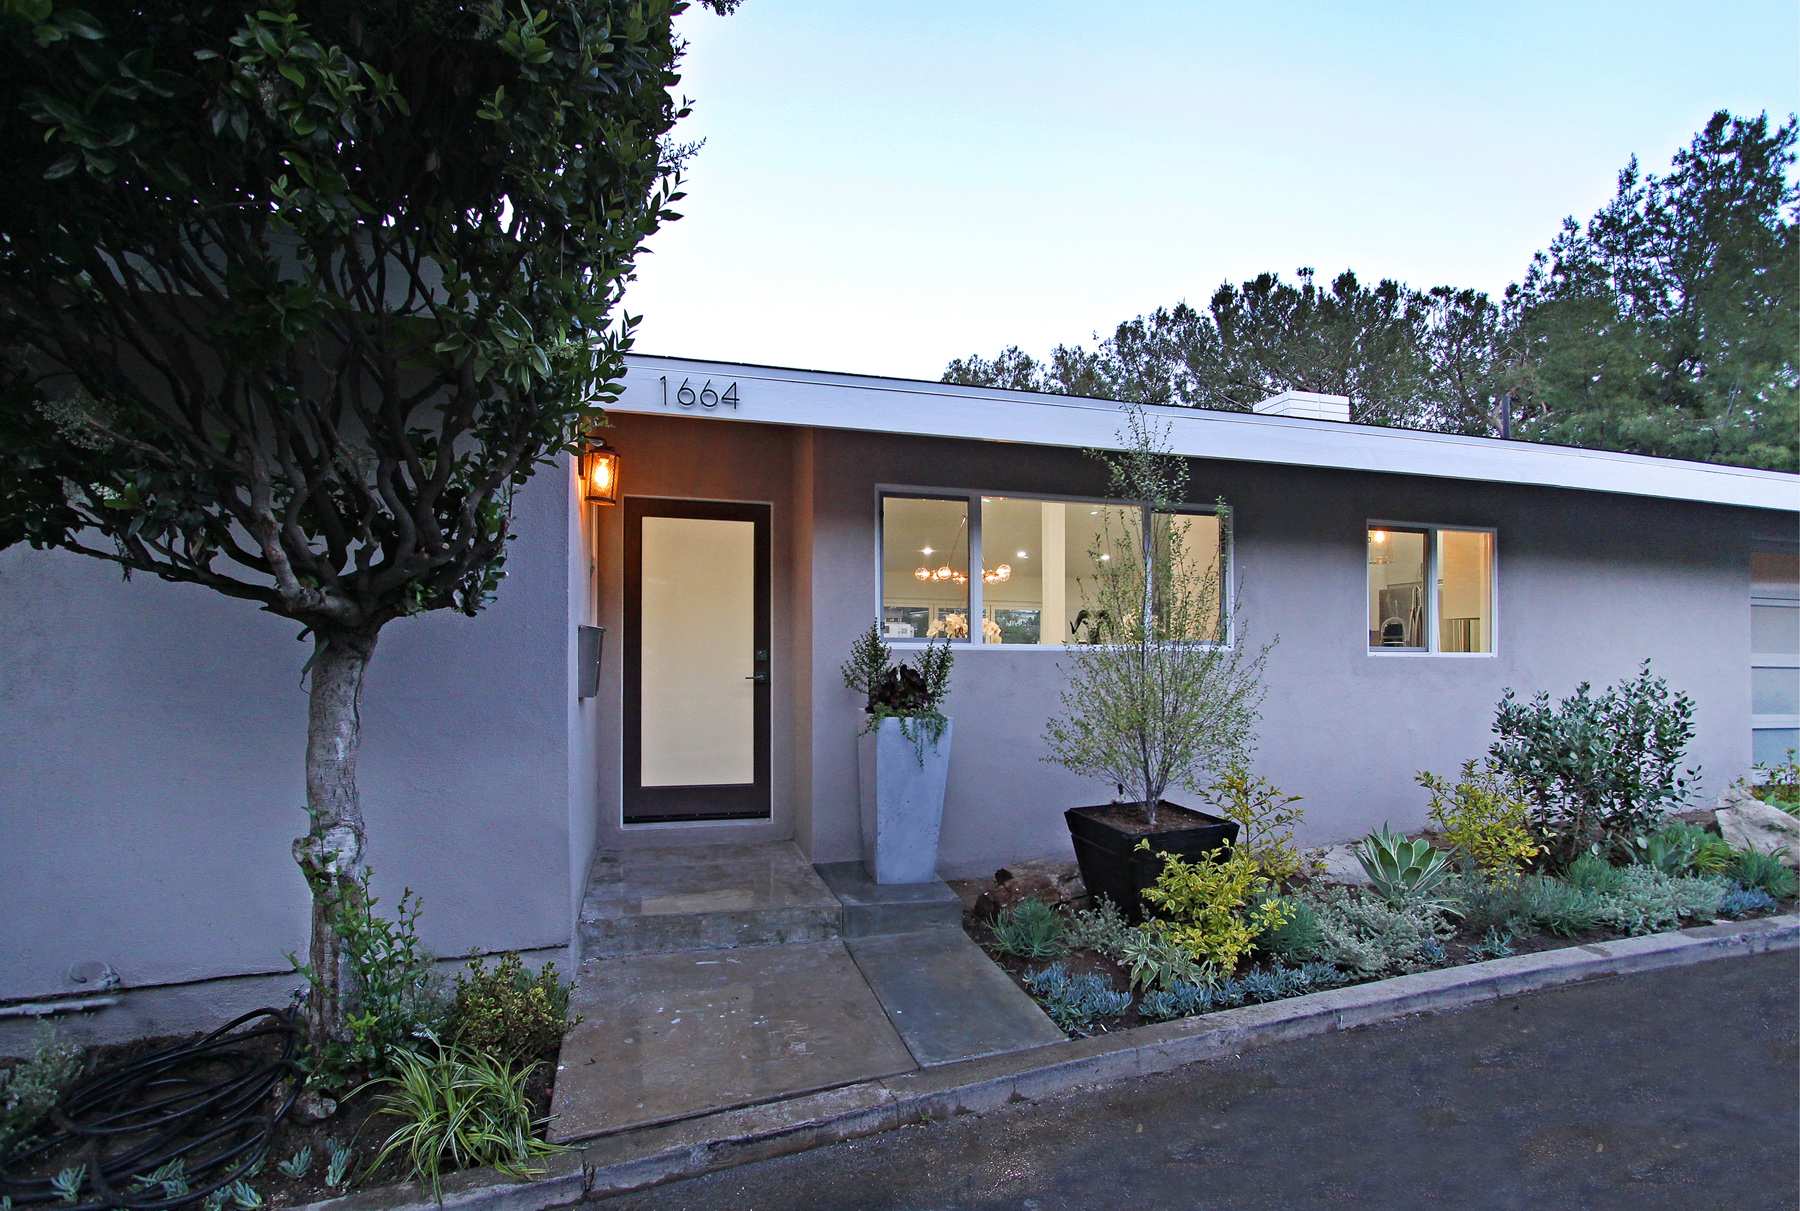 1664 Redesdale Ave, Silverlake 90026